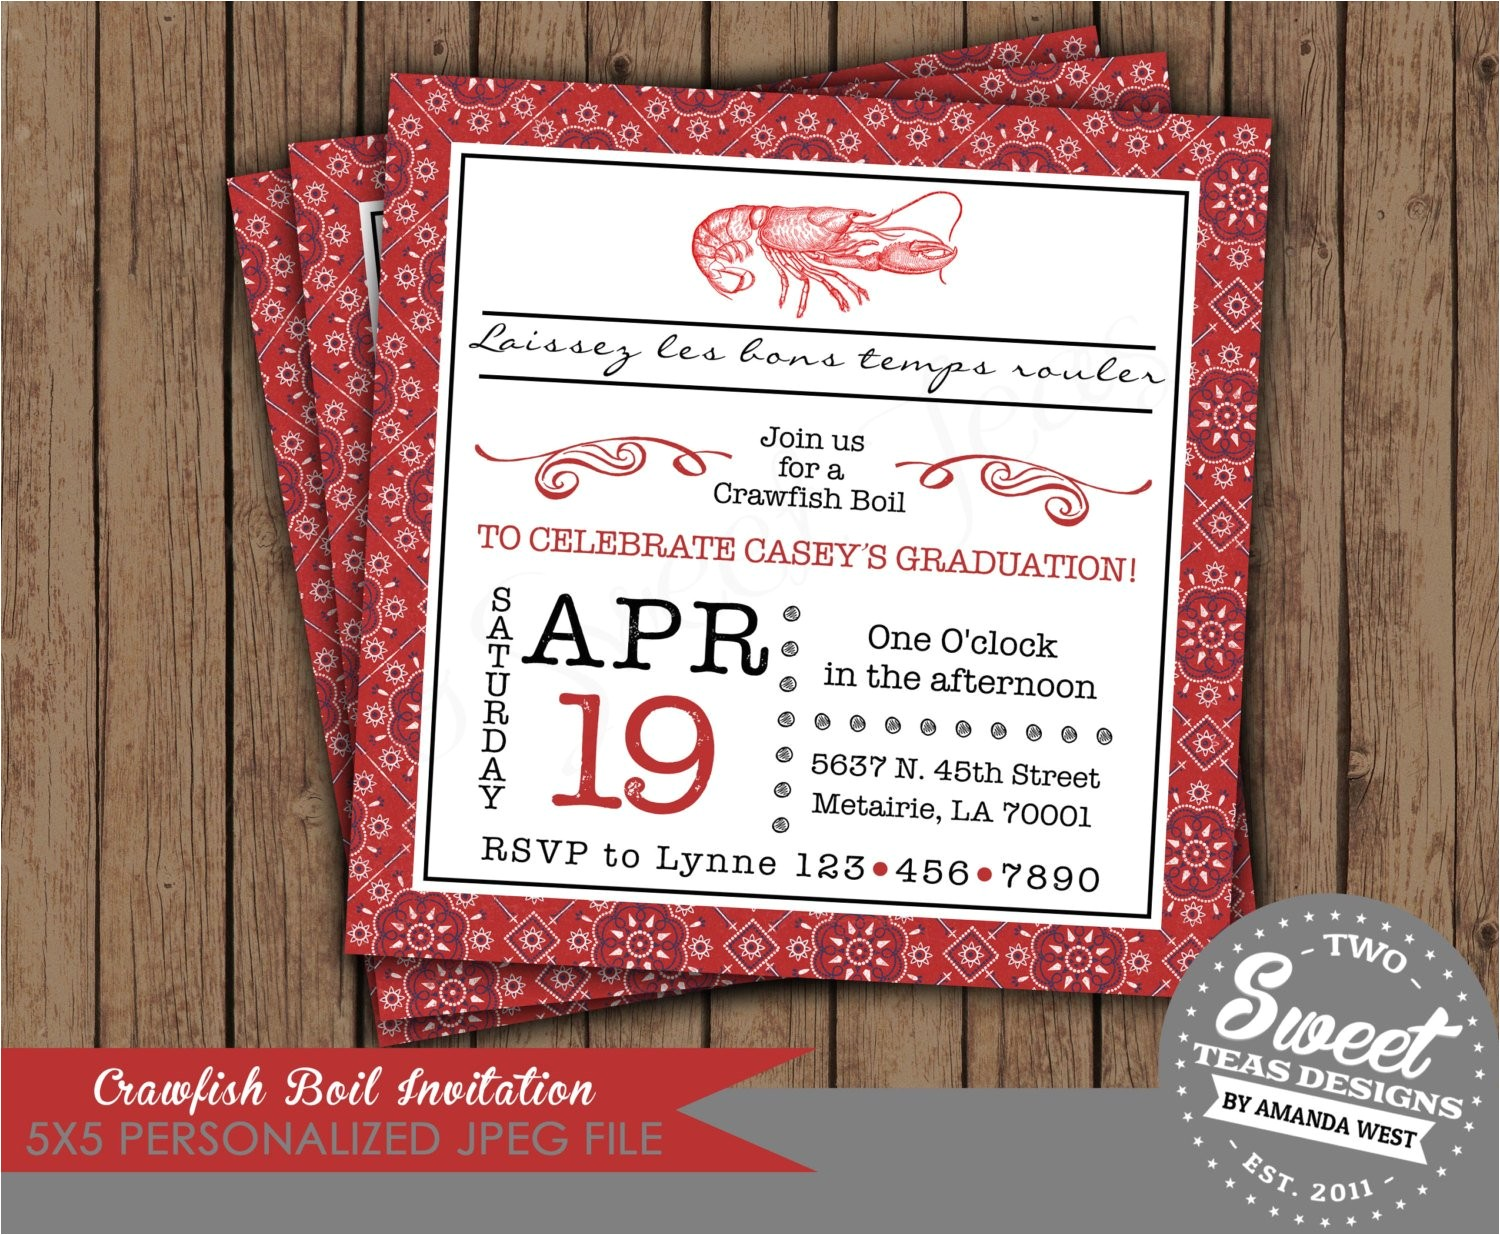 crawfish boil invitation birthday party